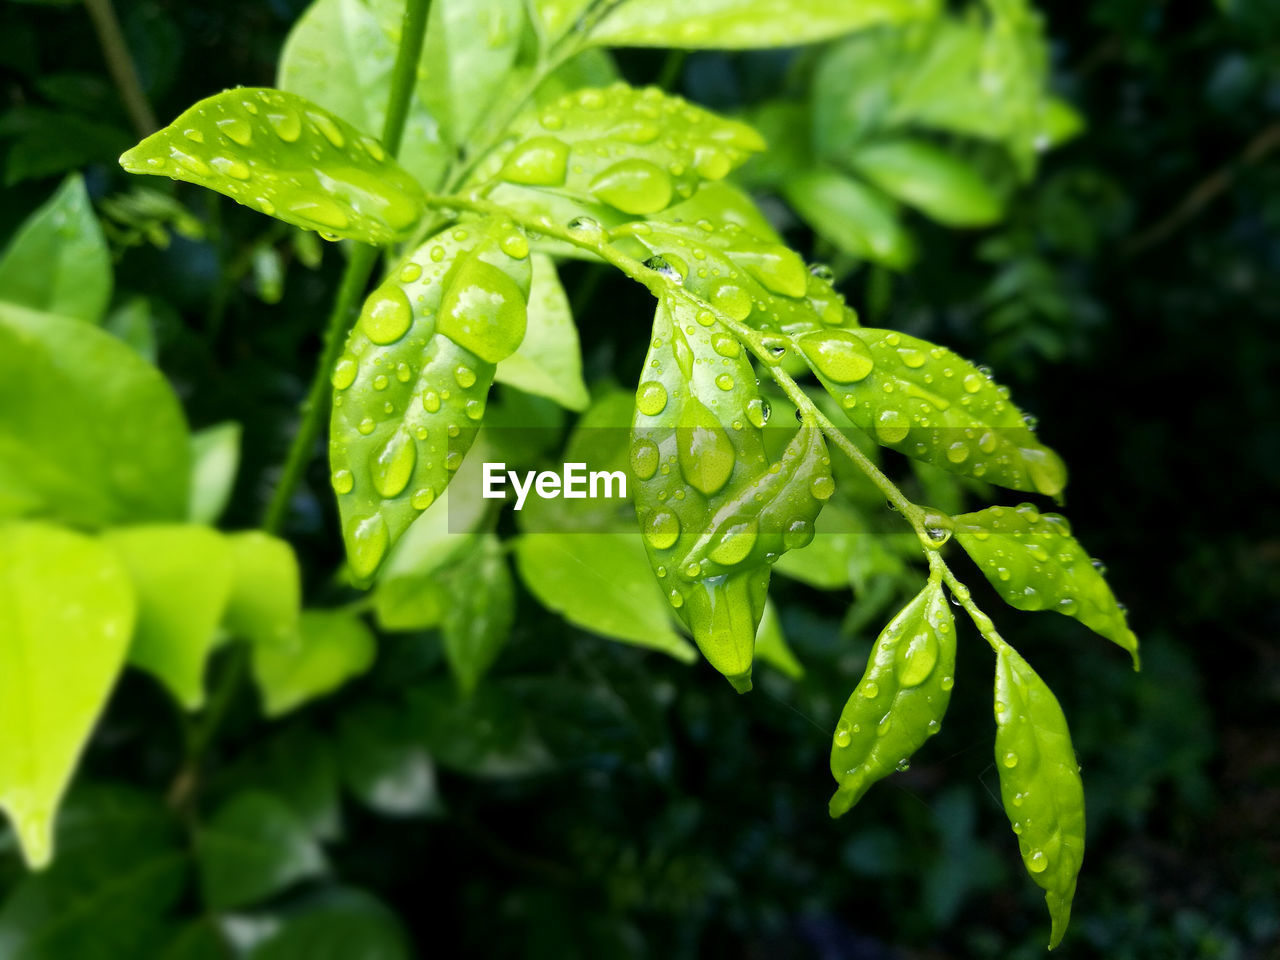 green color, growth, plant, drop, beauty in nature, close-up, leaf, plant part, wet, nature, freshness, water, no people, focus on foreground, day, dew, outdoors, rain, raindrop, leaves, rainy season, purity